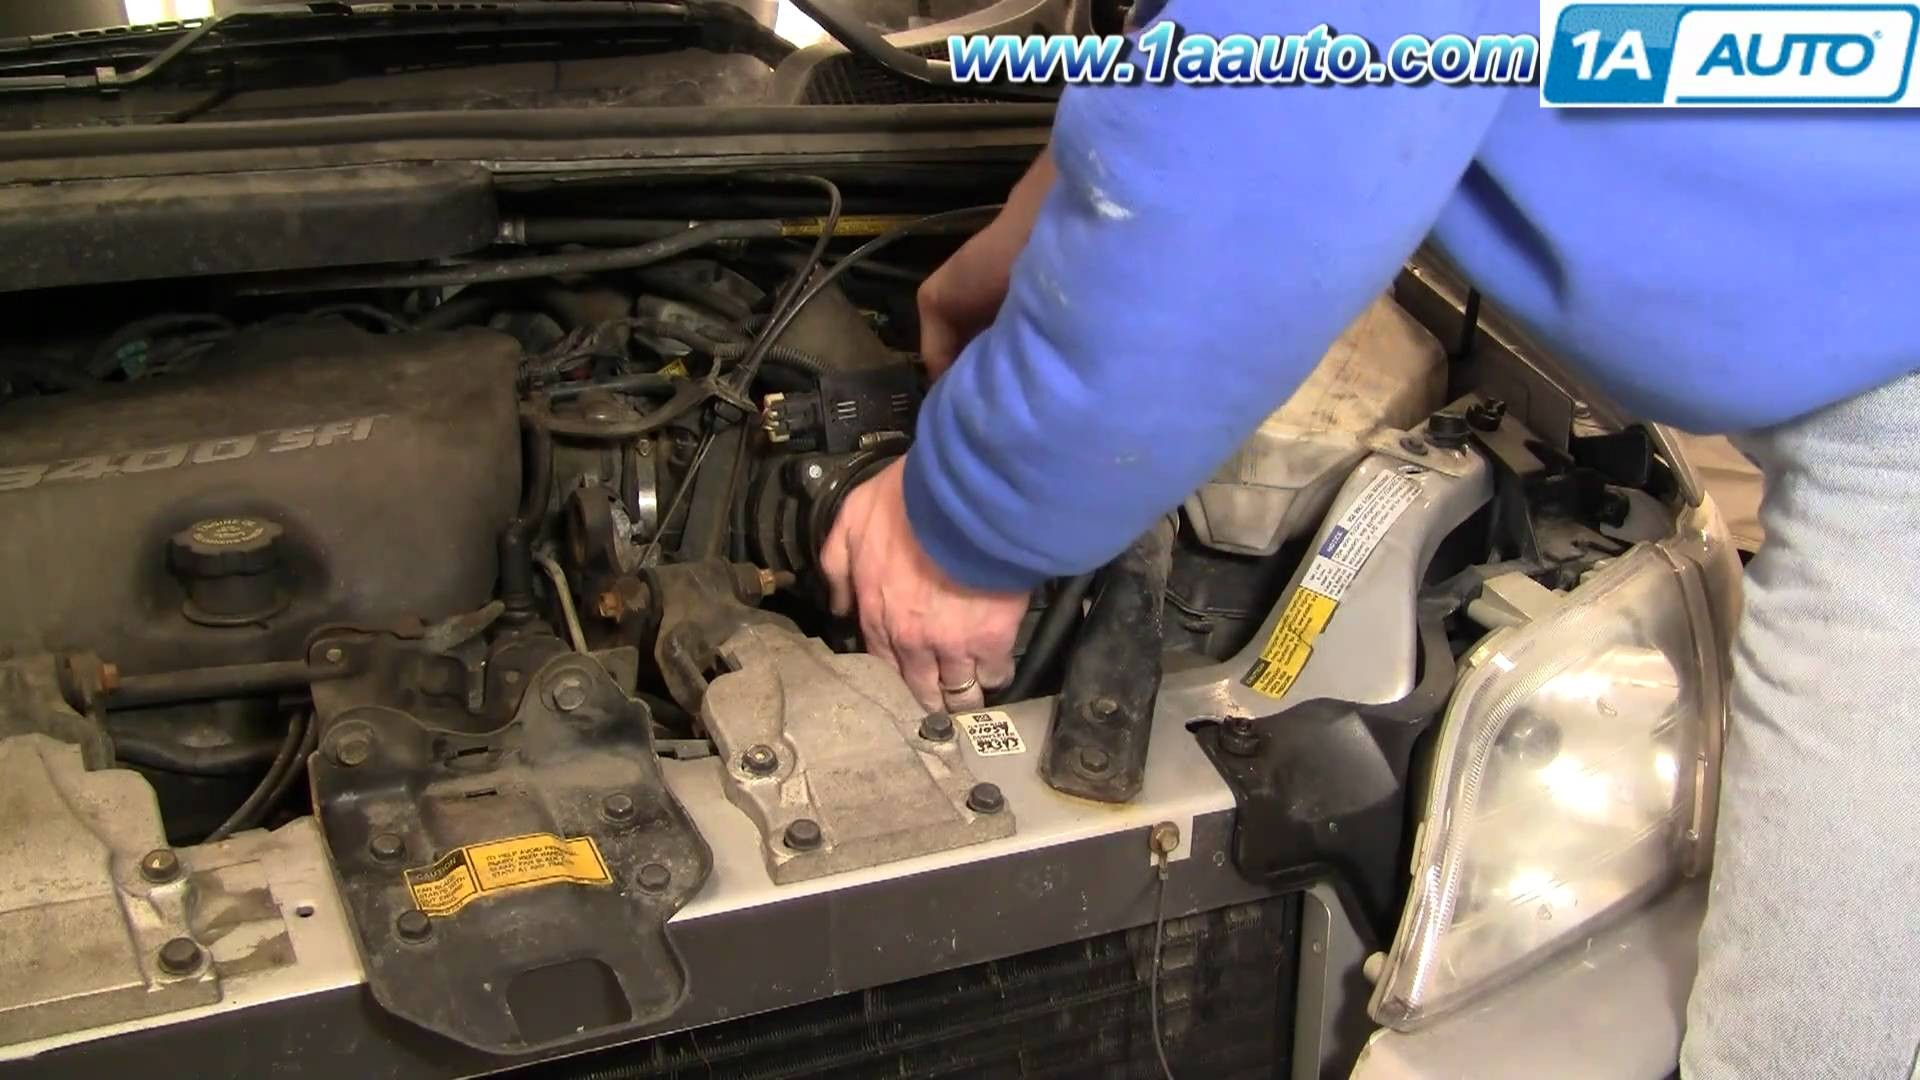 2004 Chevy Venture Engine Diagram How to Install Replace Air Filter Chevy Venture Pontiac Montana 97